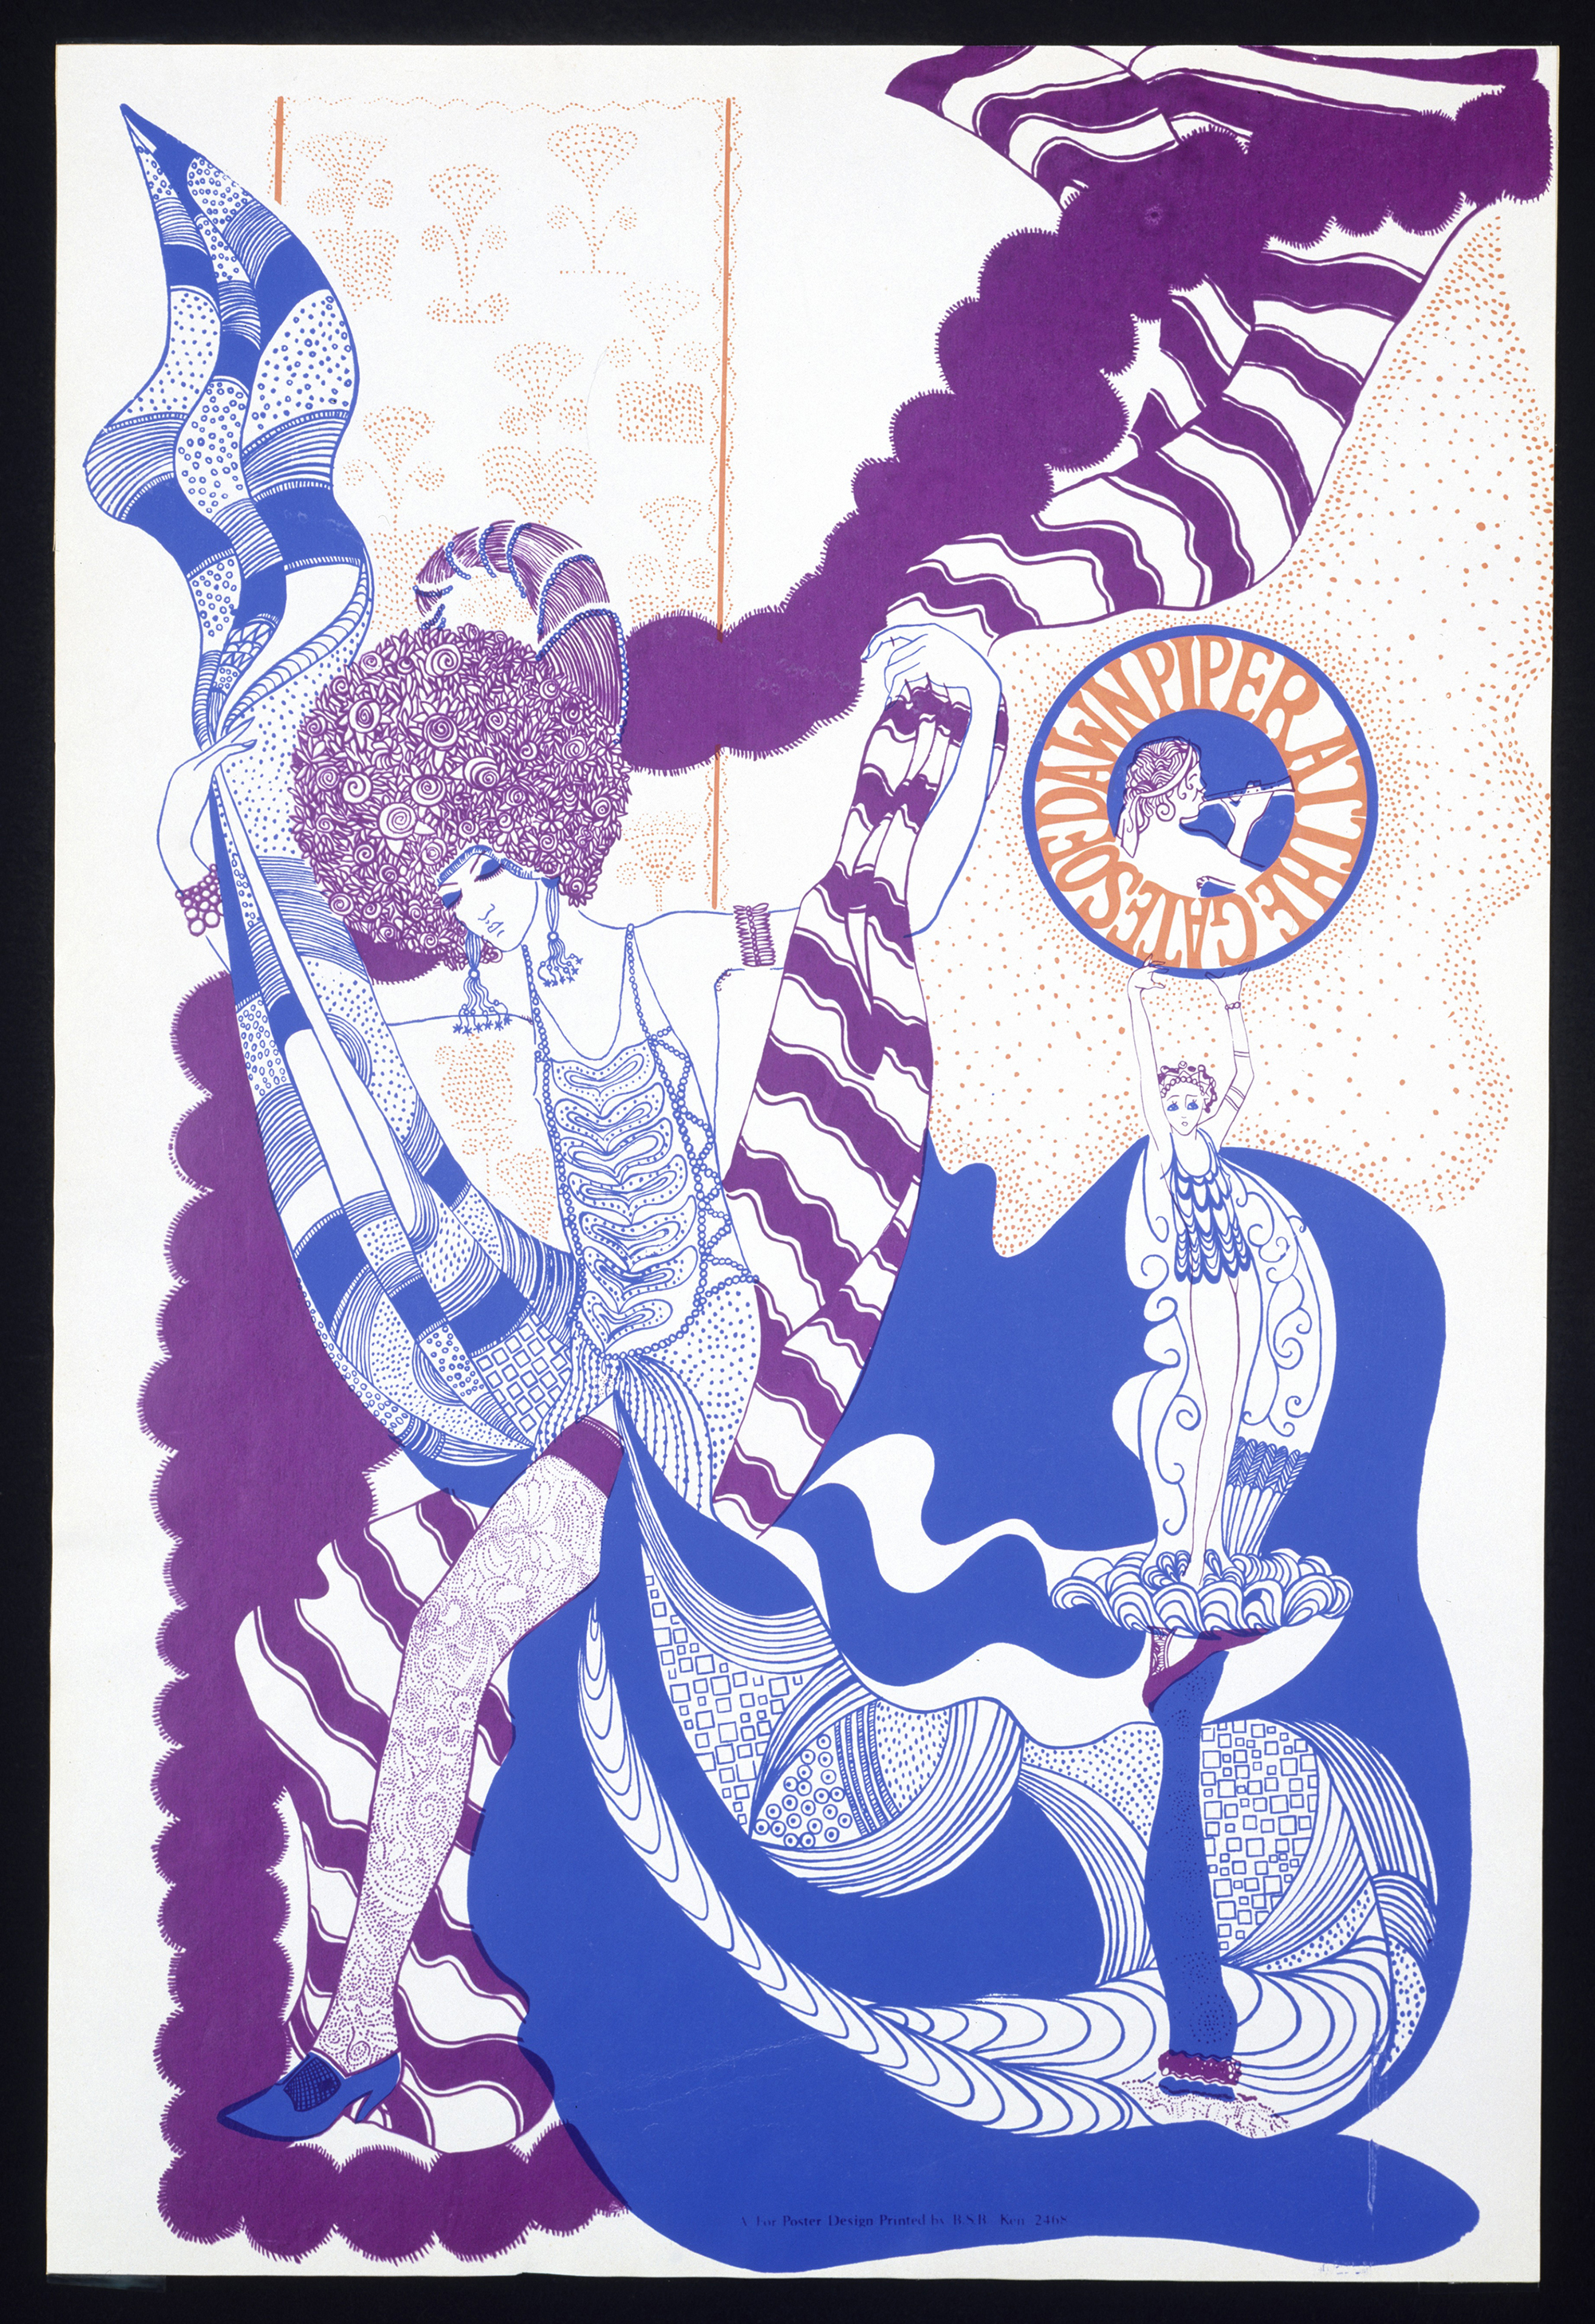 Poster promoting The Piper at the Gates of Dawn in 1967, artist unknown © Victoria and Albert Museum, London